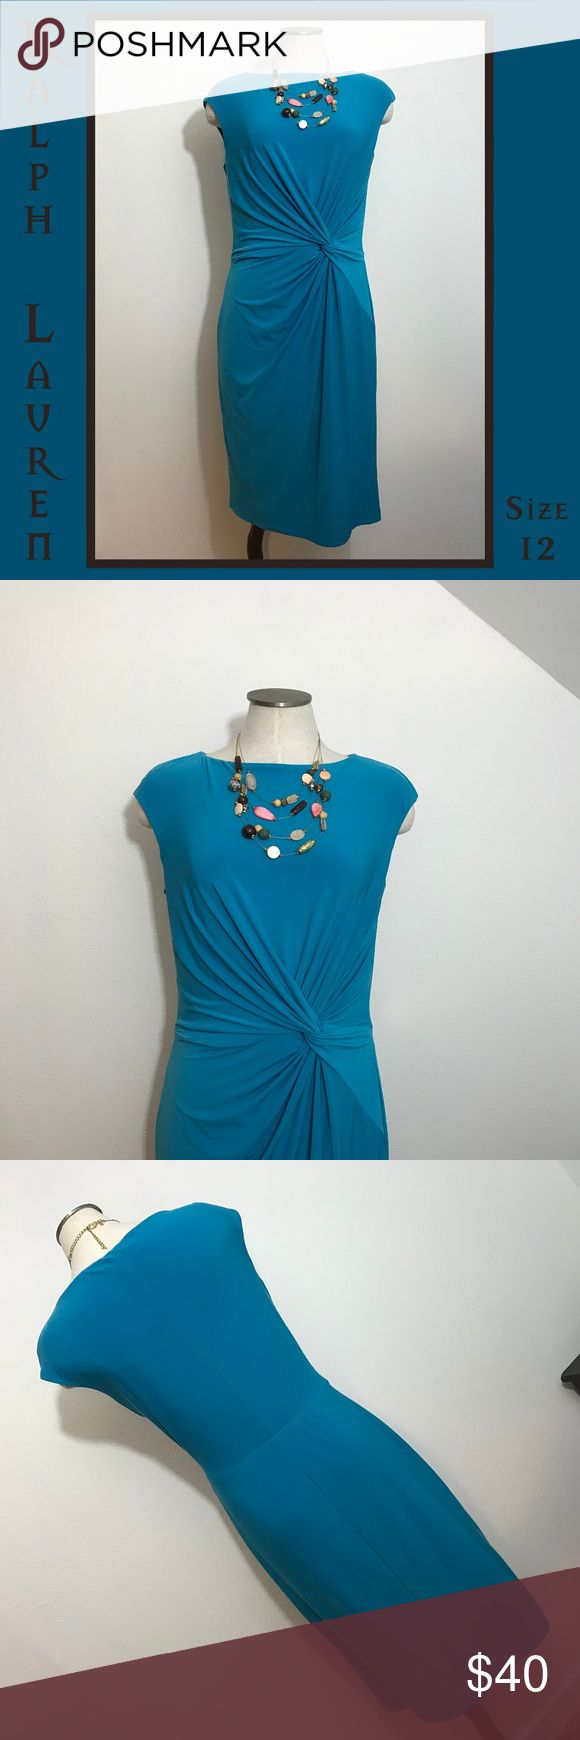 "🐣 Ralph Lauren Blue Knot Tie Dress 12 Large I love the flattering lines of this cute ""knotty"" dress by Lauren Ralph Lauren. It is in EUC and ready to join your wardrobe.  Measurements:  -Armpit-to-armpit: 18.25"" -Length: 40""  From a smoke-free and happy-to-bundle closet.  The necklace is available in a separate listing.   No trades or transactions outside of Poshmark. [T0417-350] Lauren Ralph Lauren Dresses Midi"